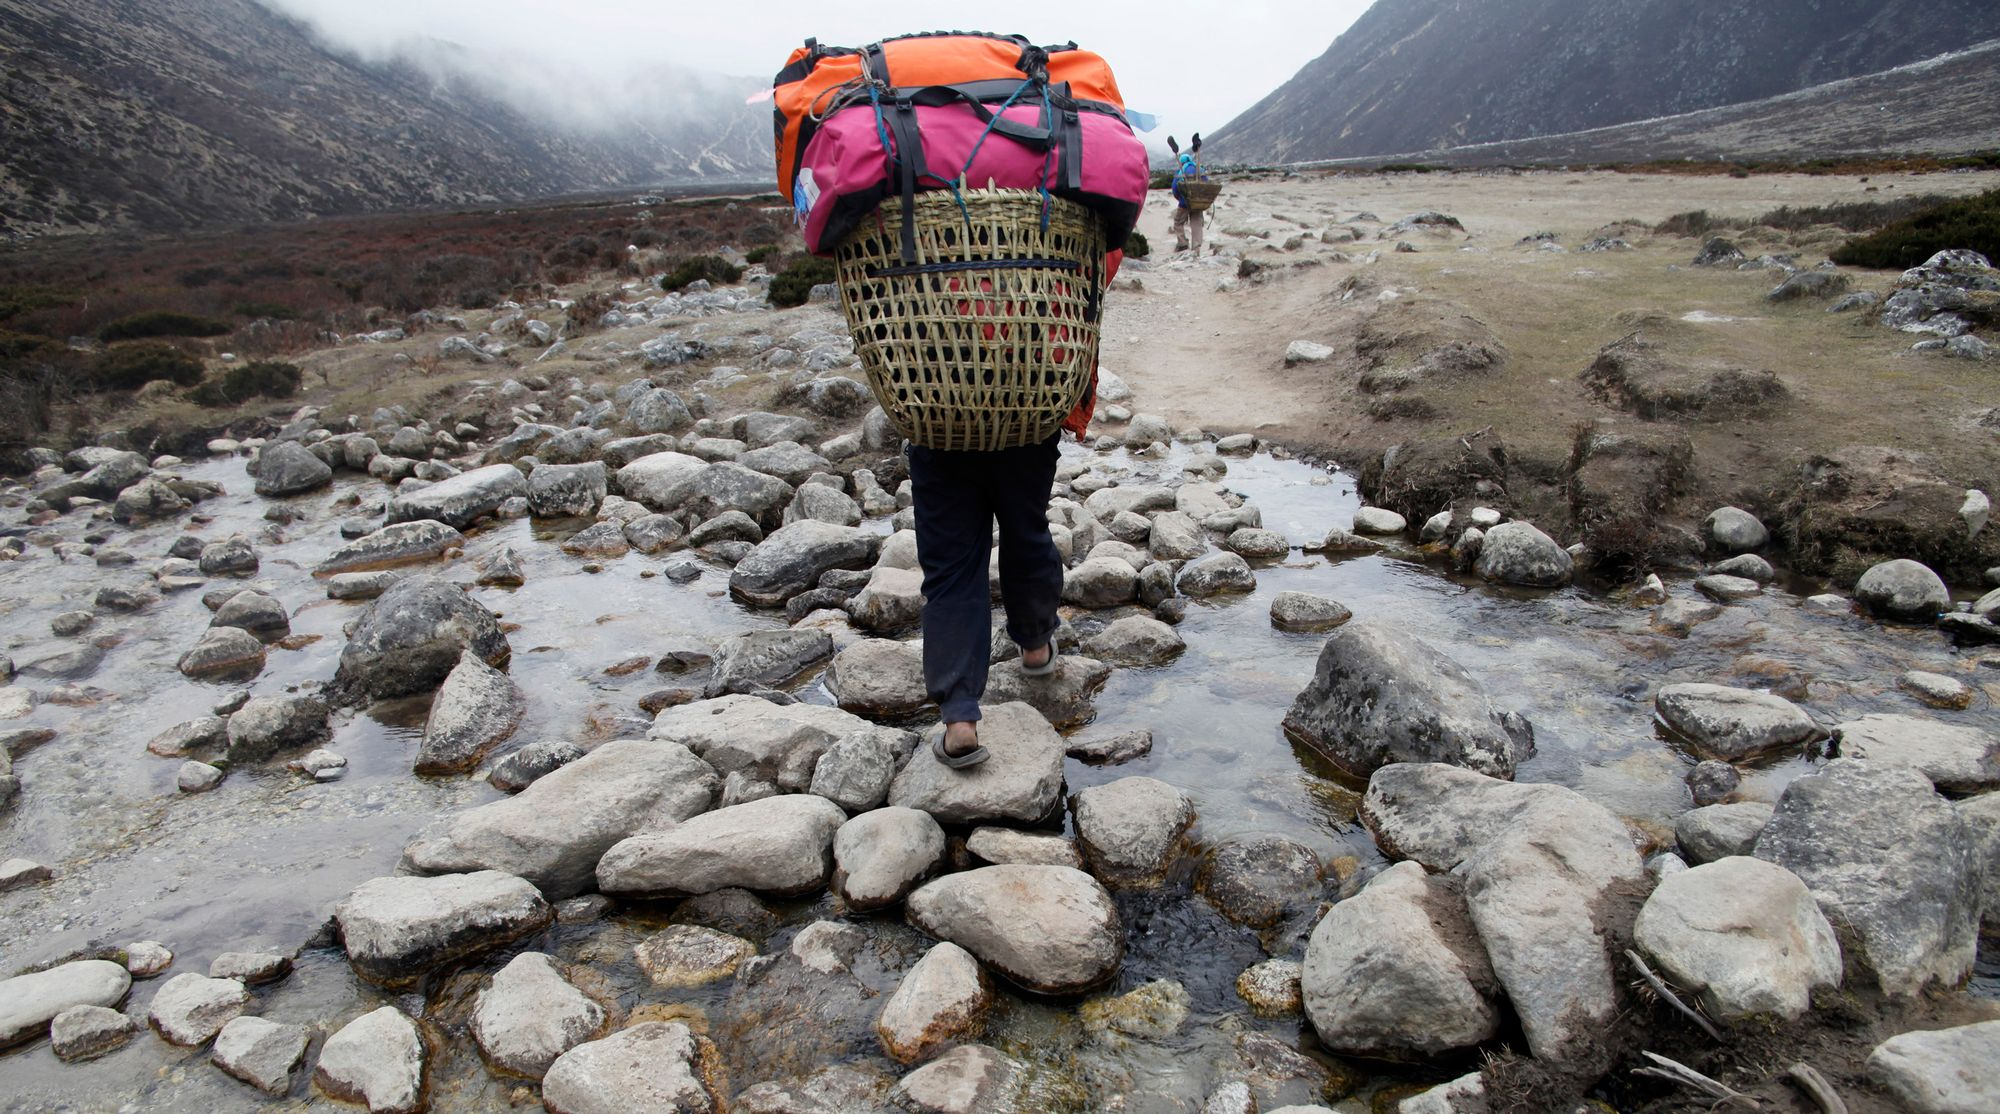 Un porteur transportant les bagages de touristes à travers le village de Periche, sur le Mont Everest.